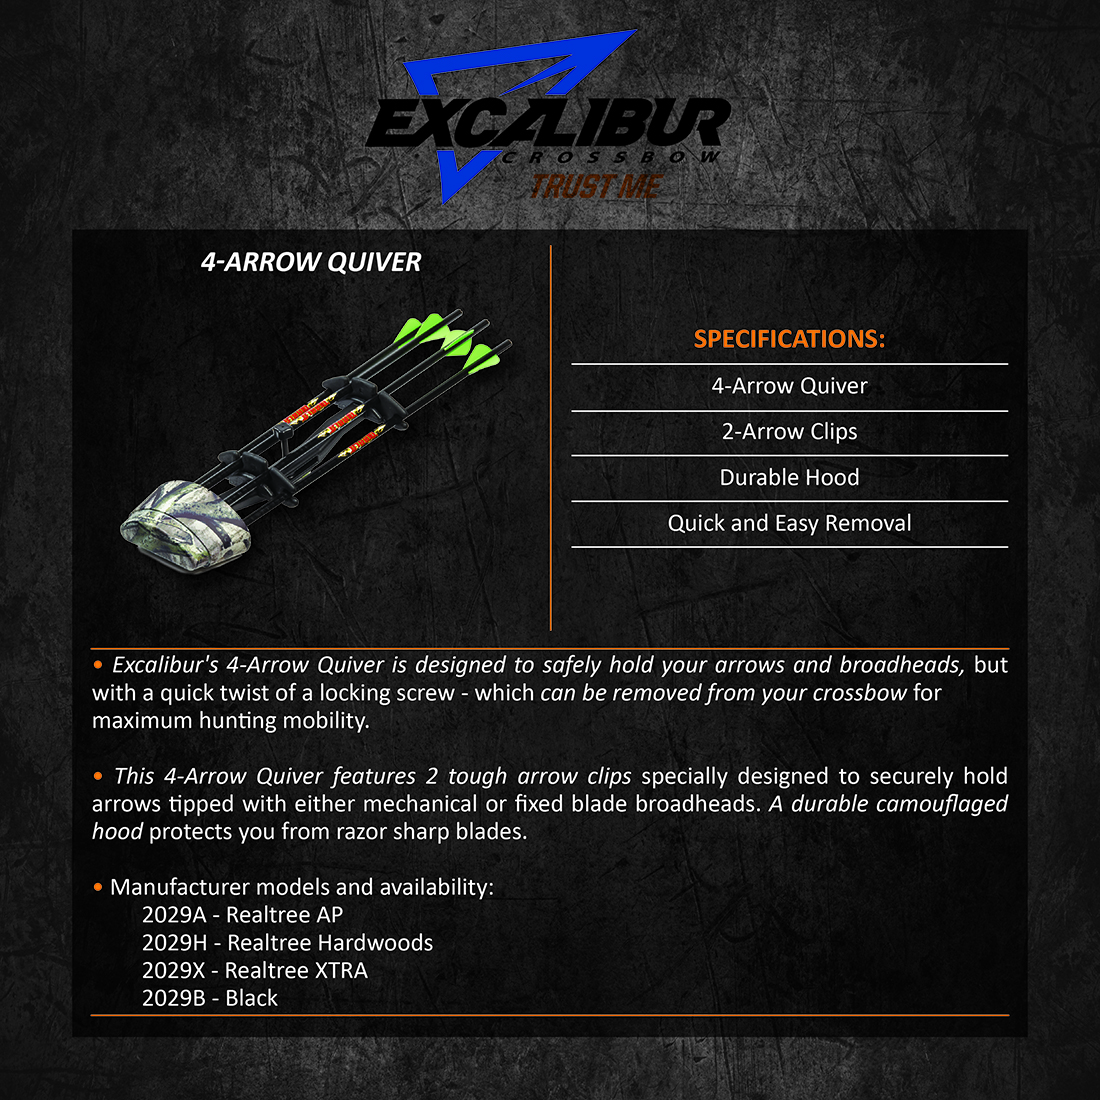 Excalibur_4Arrow_Quiver_Product_Description